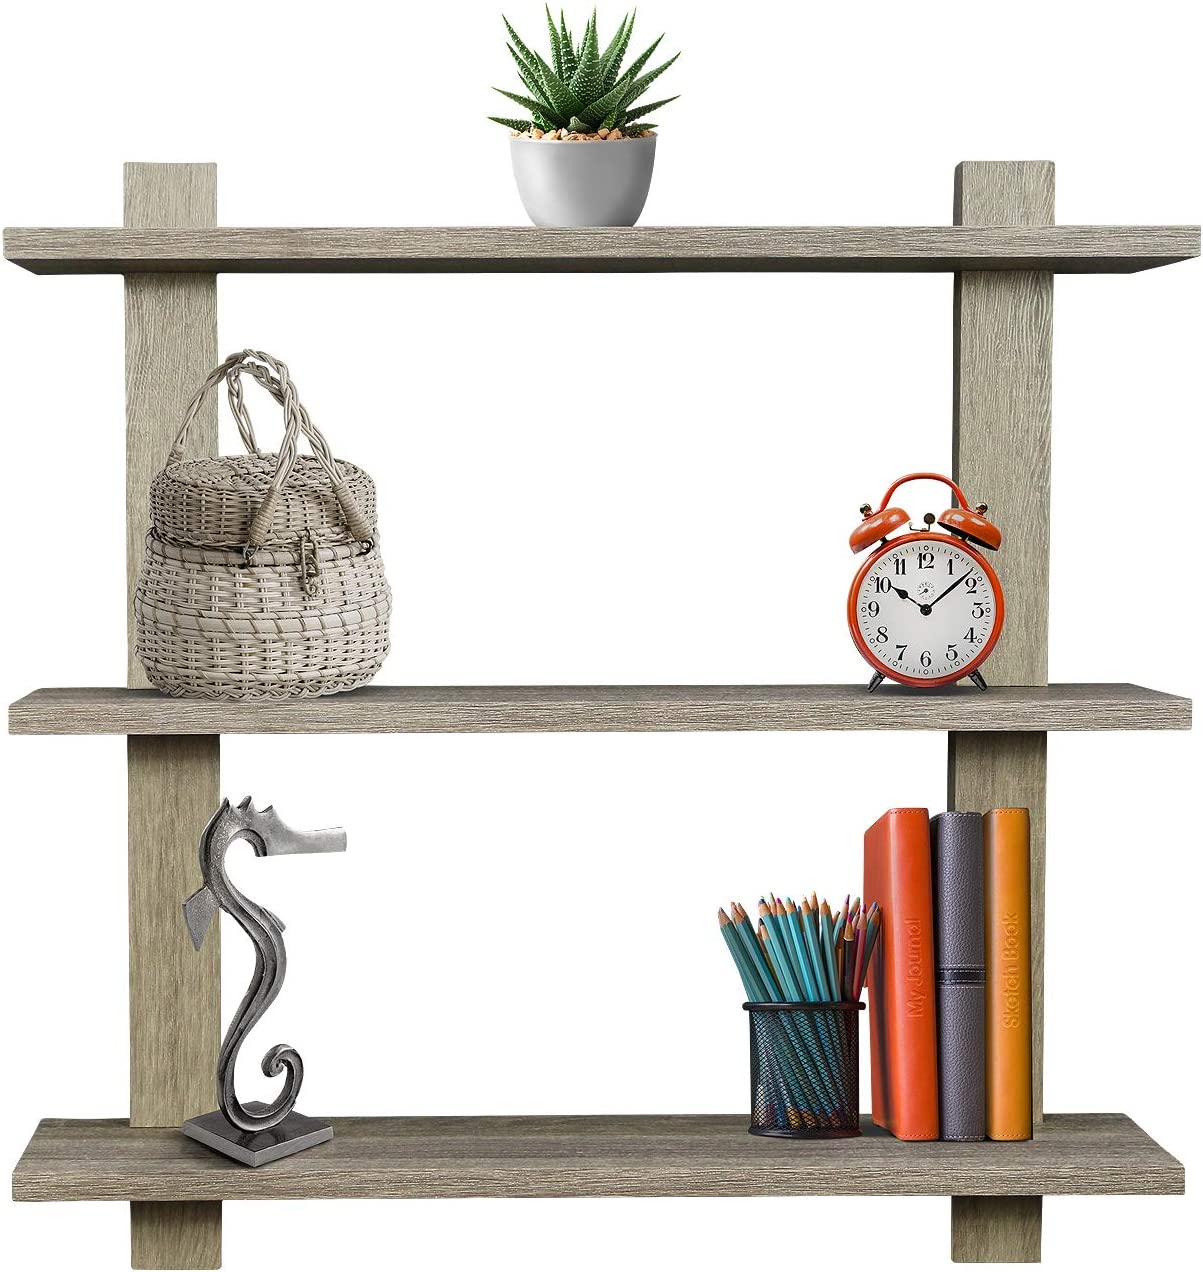 Sorbus Floating Shelf Asymmetric Square Wall Shelf, Decorative Hanging Display for Trophy, Photo Frames, Collectibles, and Much More, Set of 3 3-Tier Grey